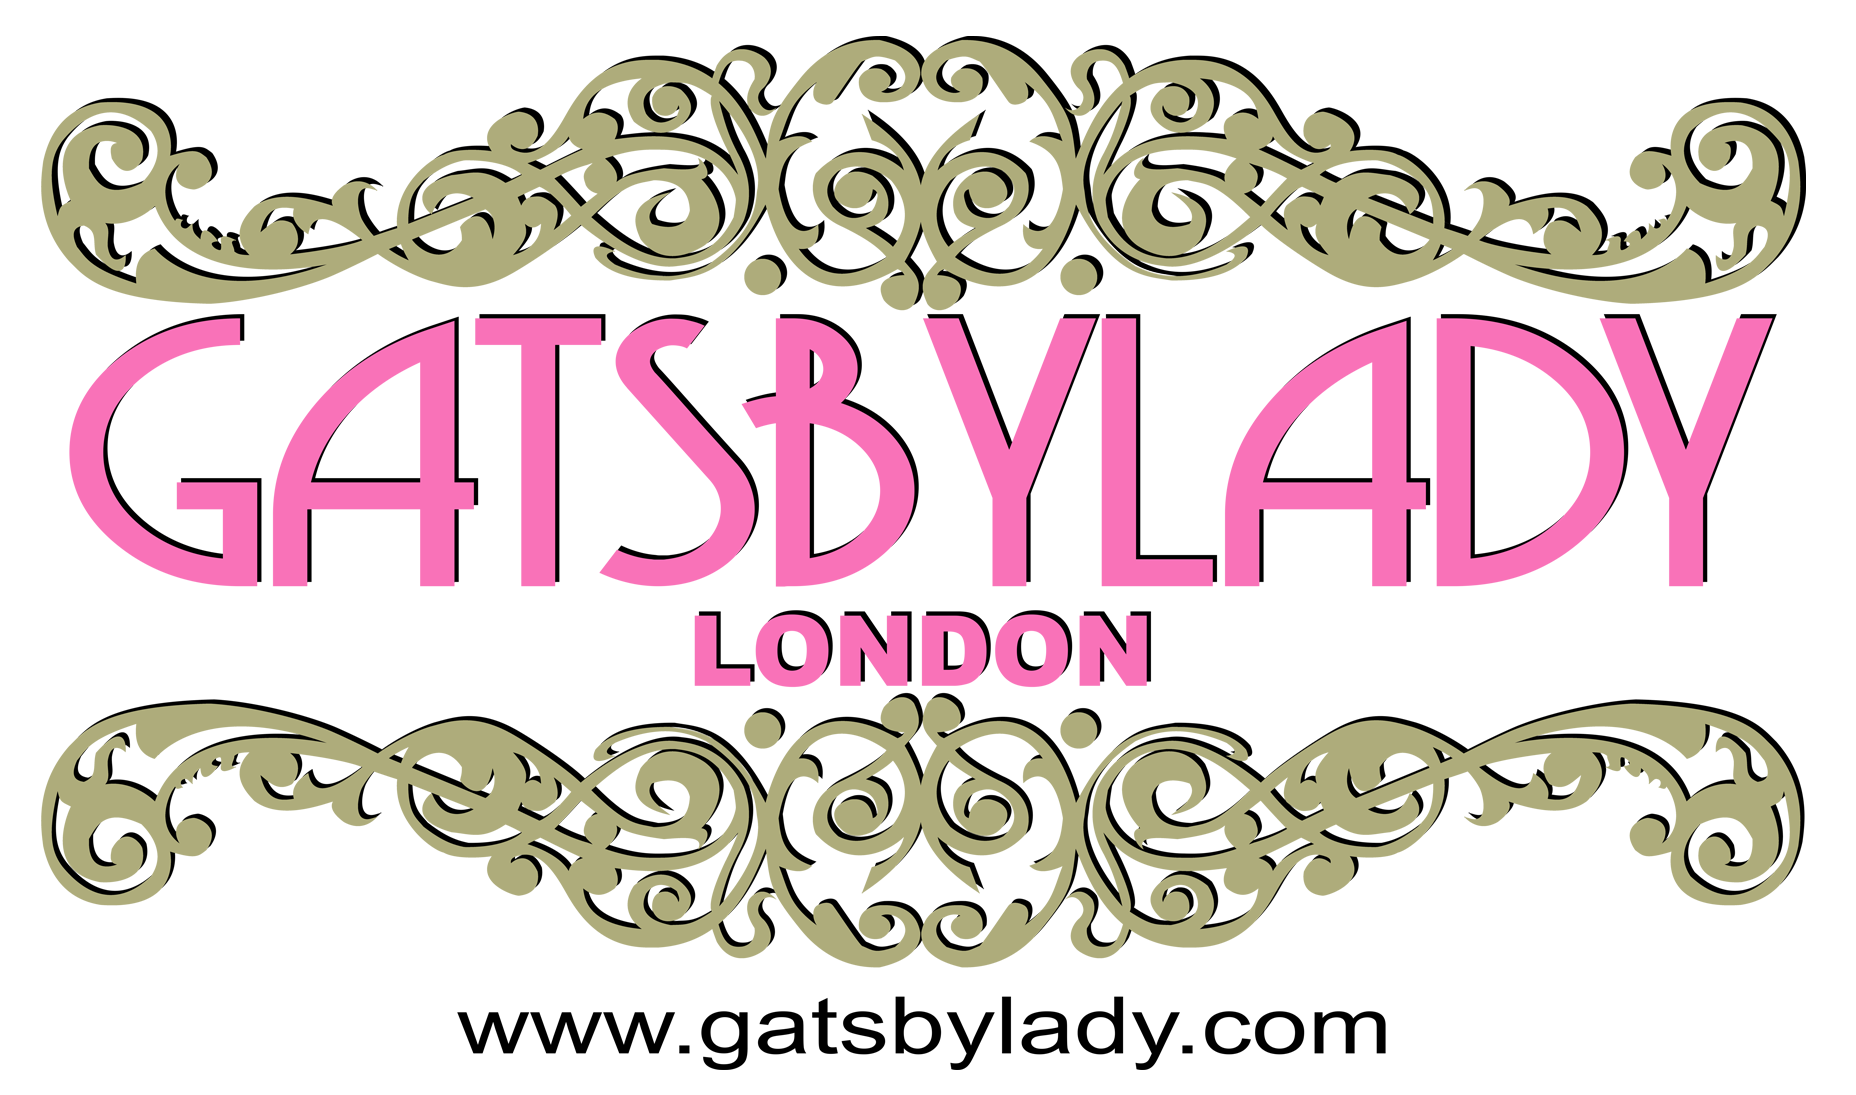 Read Gatsbylady London Reviews